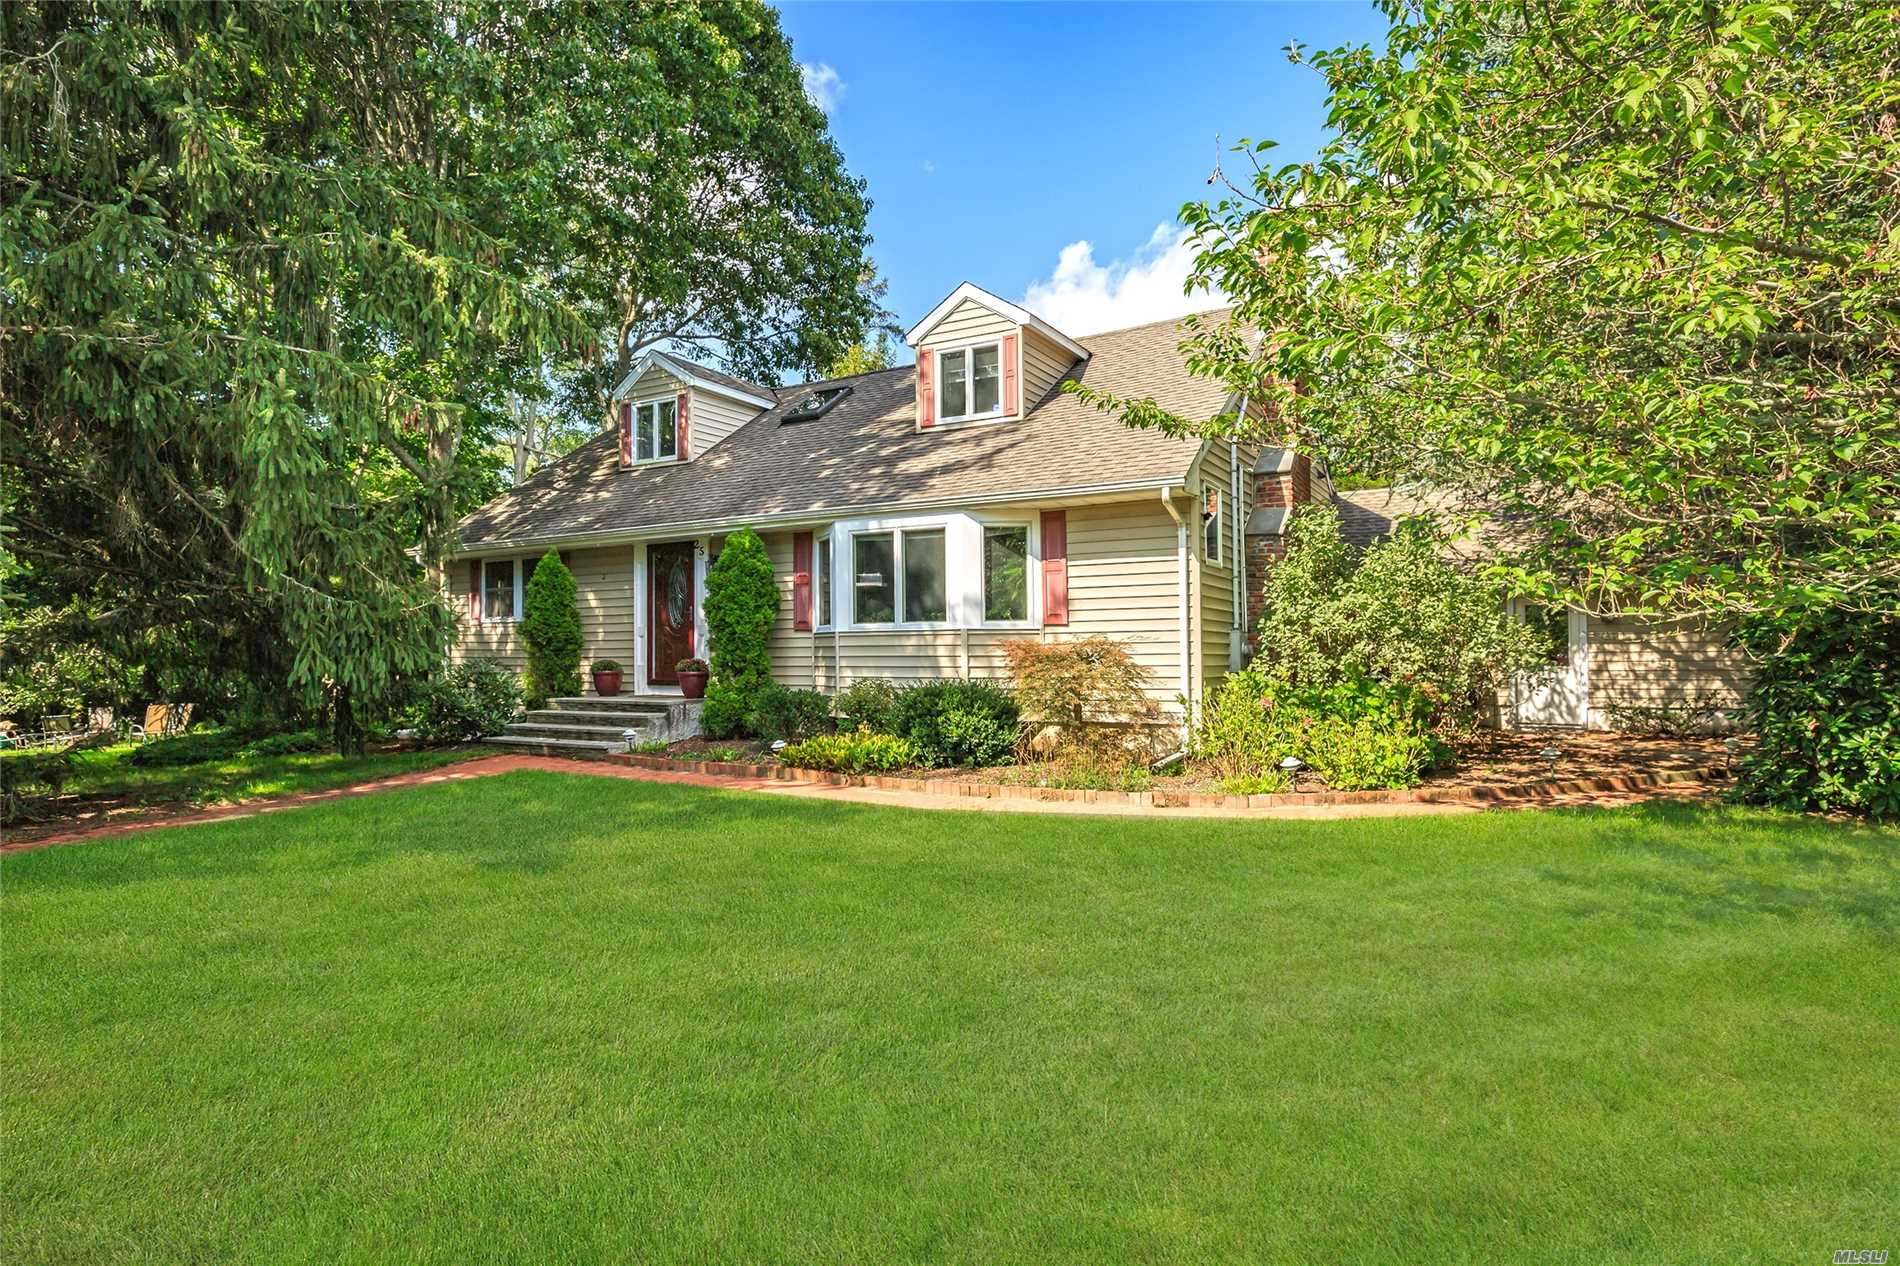 Cutchogue 4 Bedroom Cape With Newly Renovated Chefs Kitchen, 2 Spacious Living Areas, Dining Room And Bedroom On First Floor. This Home Also Boasts , Security System, Generator Hookup And Beach Rights To The Causeway Beach And Pequash Beach. Love To Boat? Moor Your Boat In East Creek With Direct Access To Peconic Bay. Perfect Home For Entertaining Year Round Or Summer Family Gatherings!